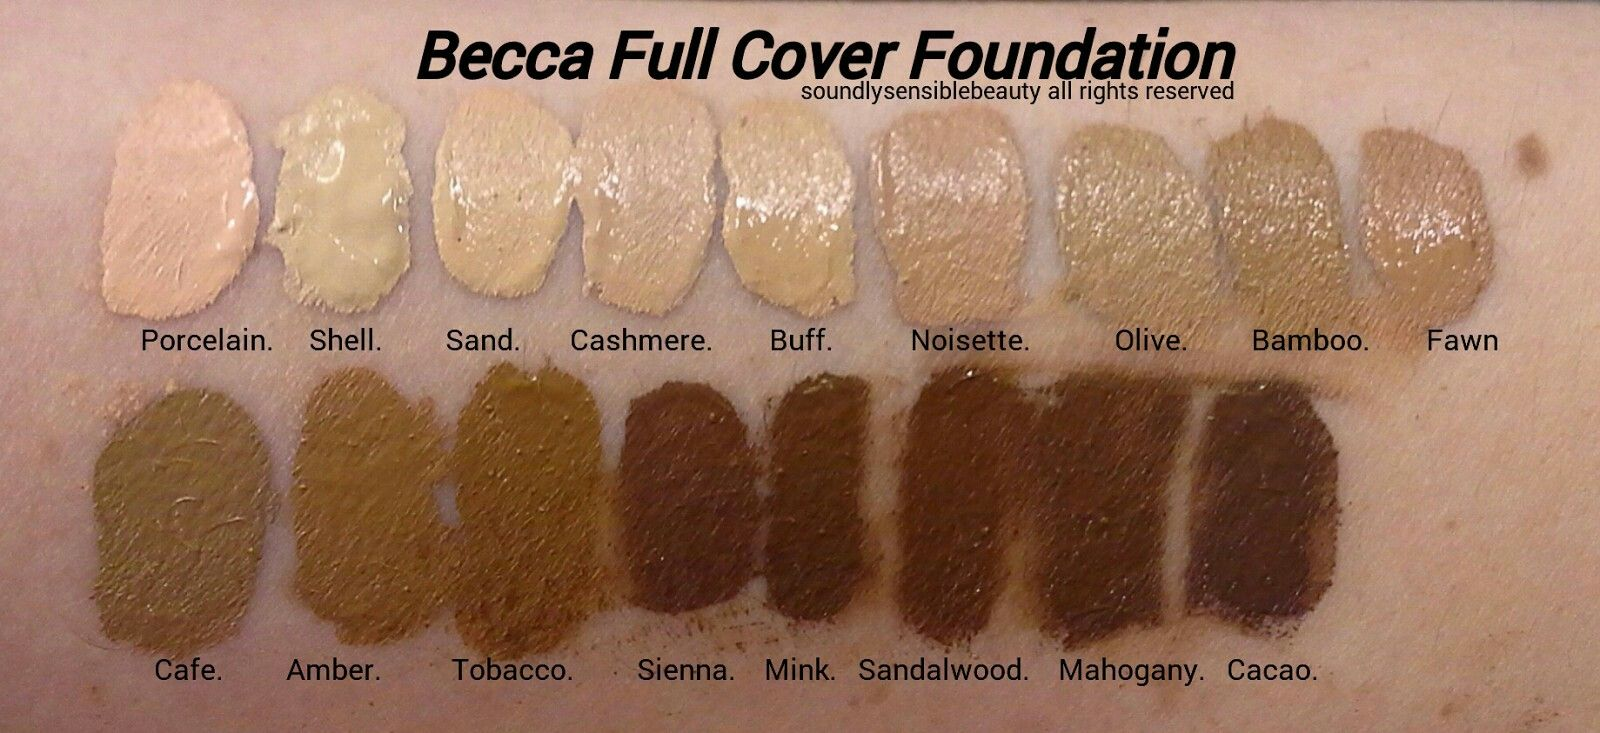 Pin By Taji Pershard On Health Amp Beauty Becca Ultimate